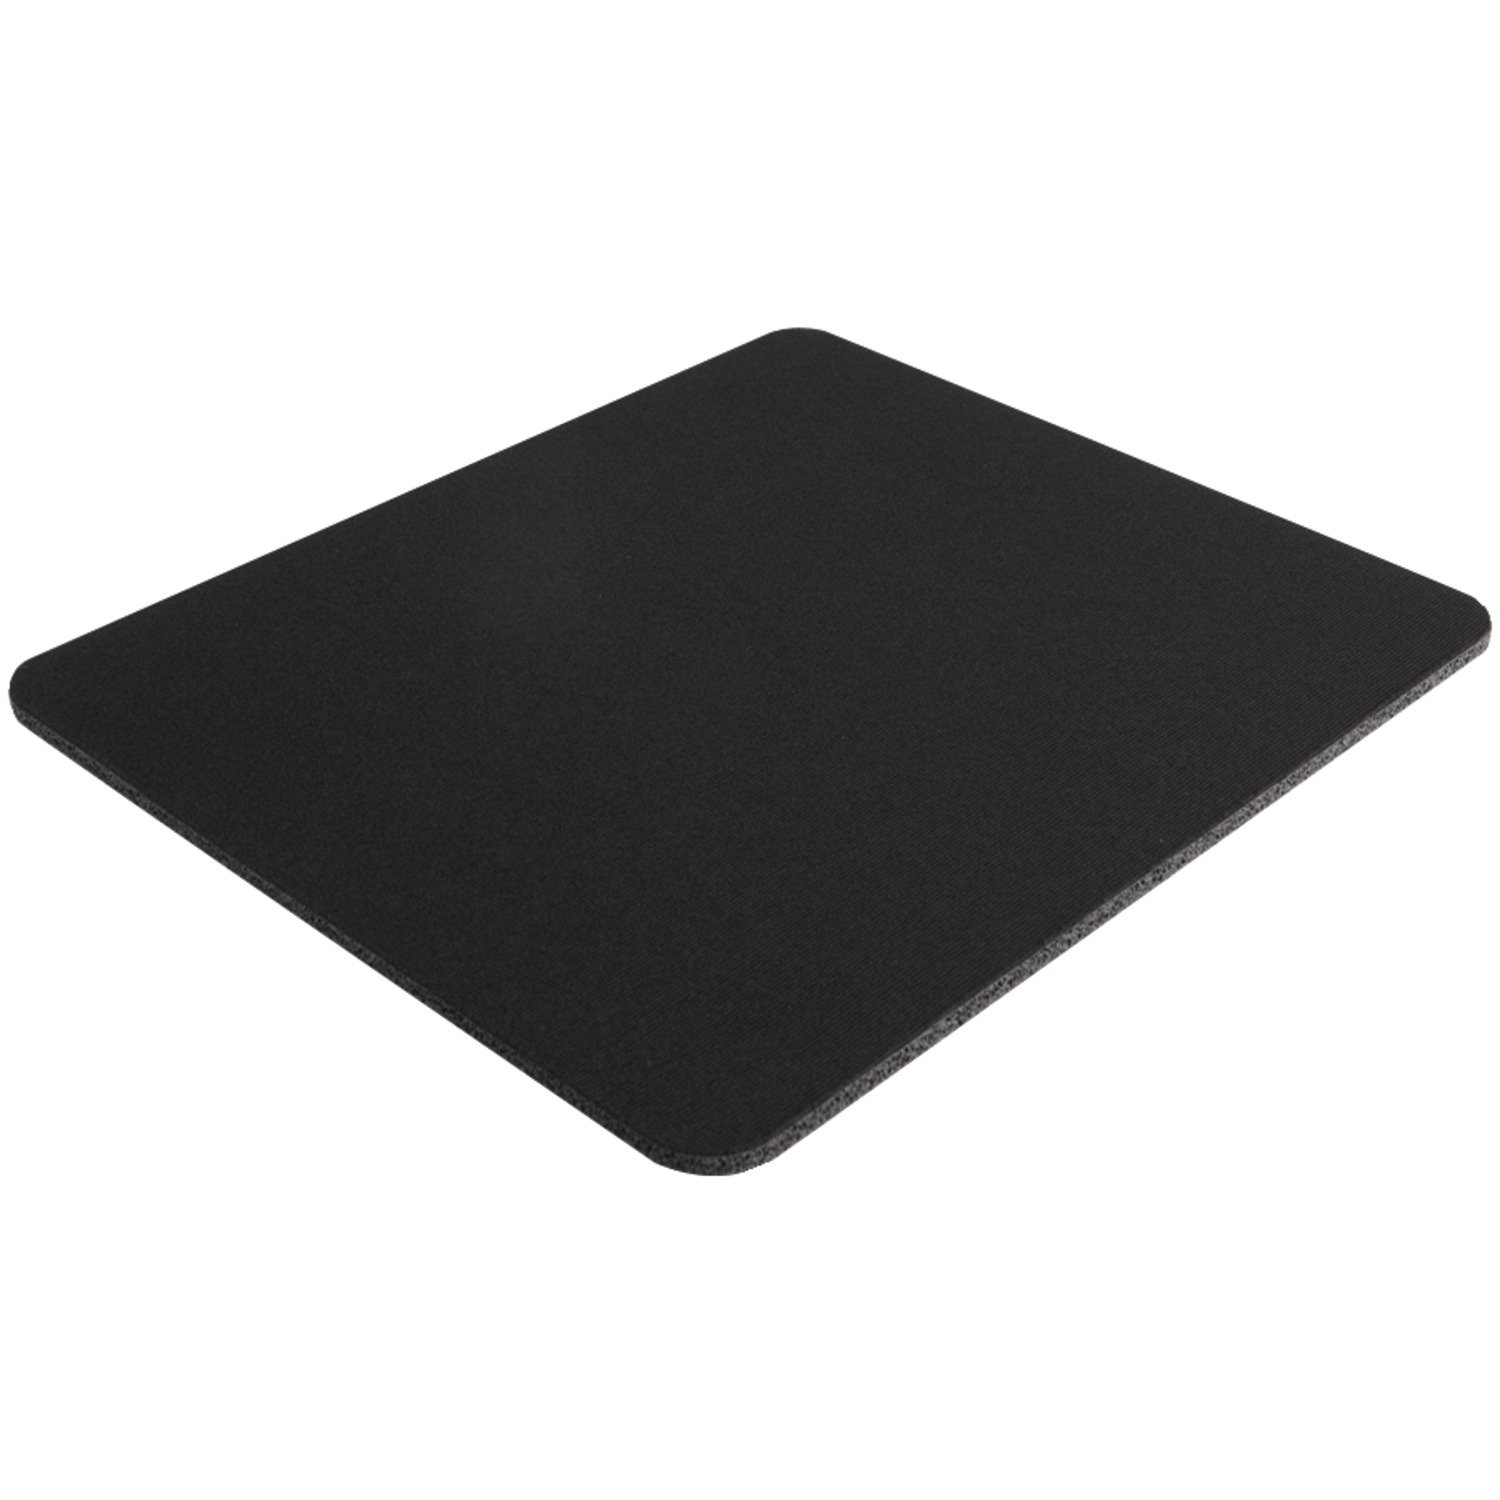 Belkin 8-by-9-Inch Mouse Pad (Black) Belkin Components F8E089-BLK Desk Accessories